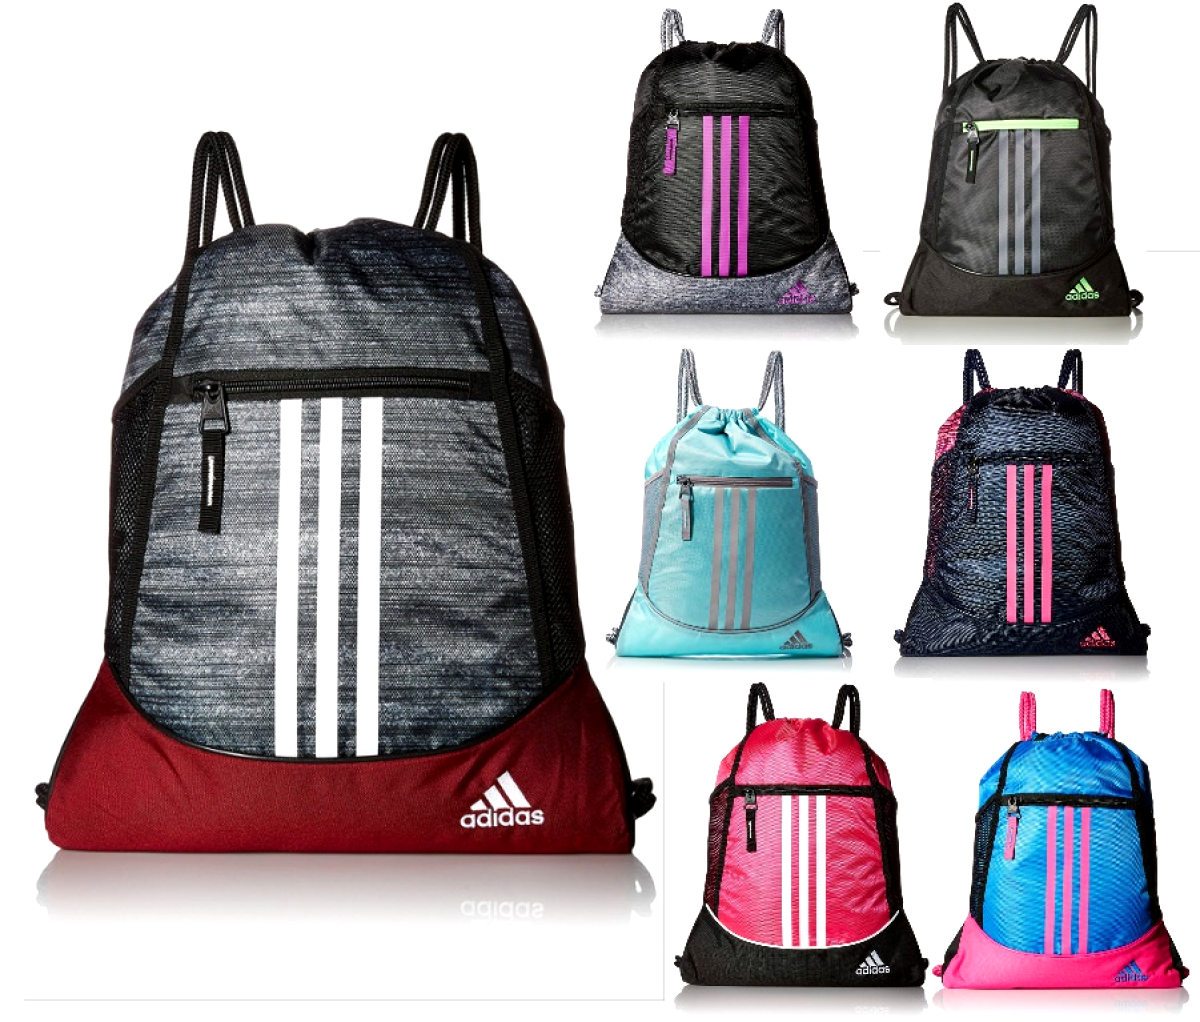 ba66b87872 Details about adidas Alliance Sack Pack Drawstring Gym Bags Unisex ...